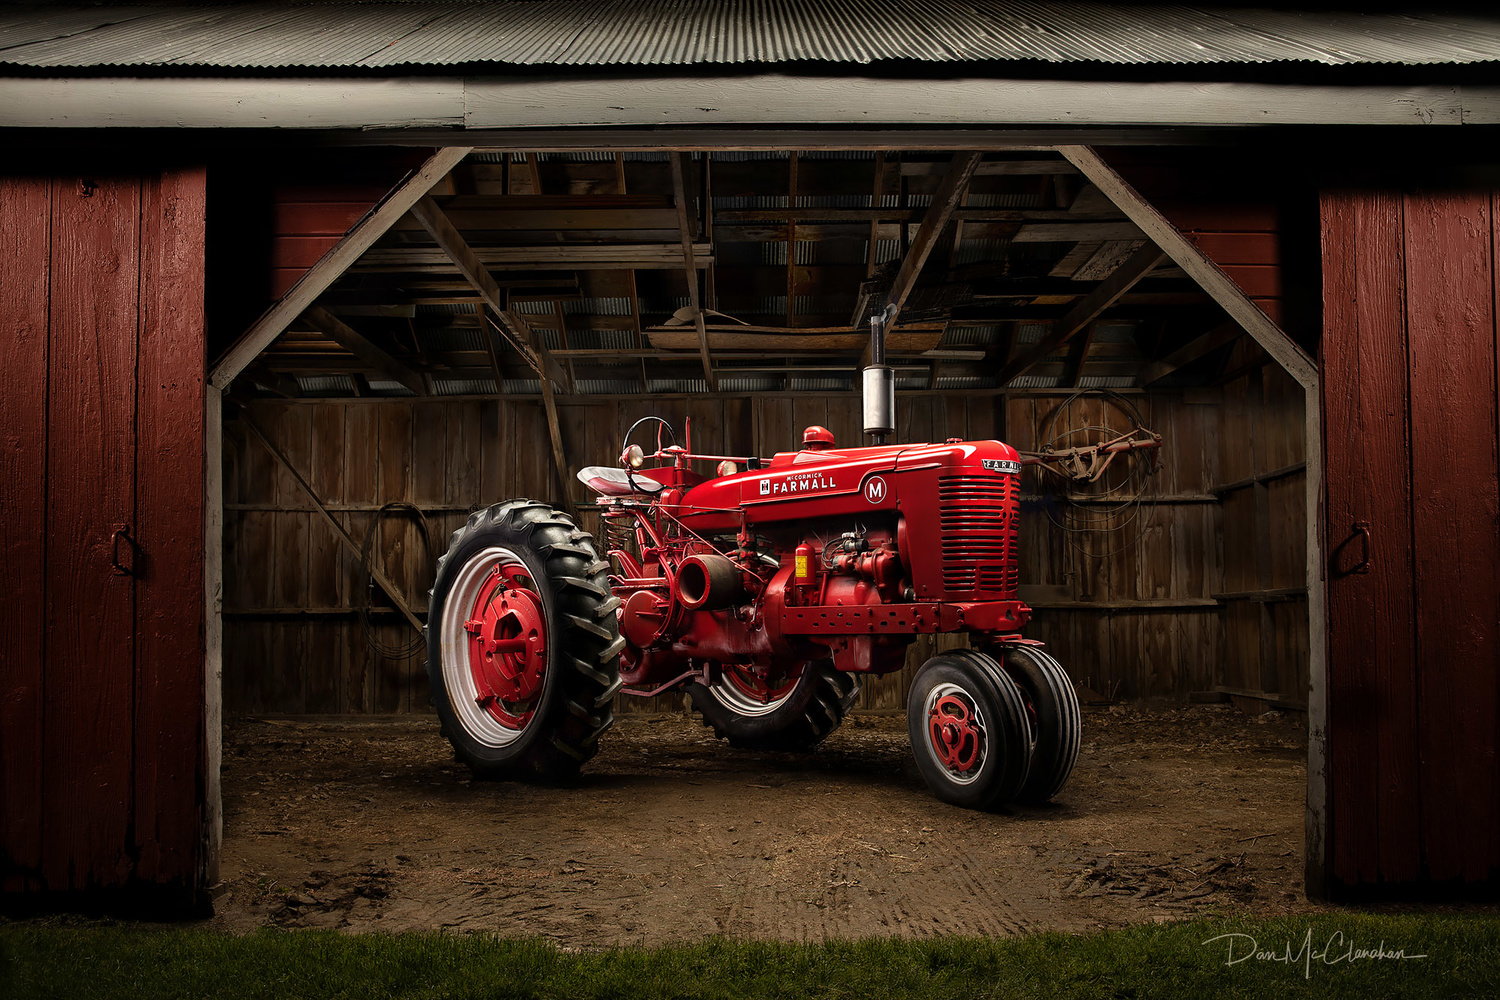 1951 Farmall Tractor by Dan McClanahan